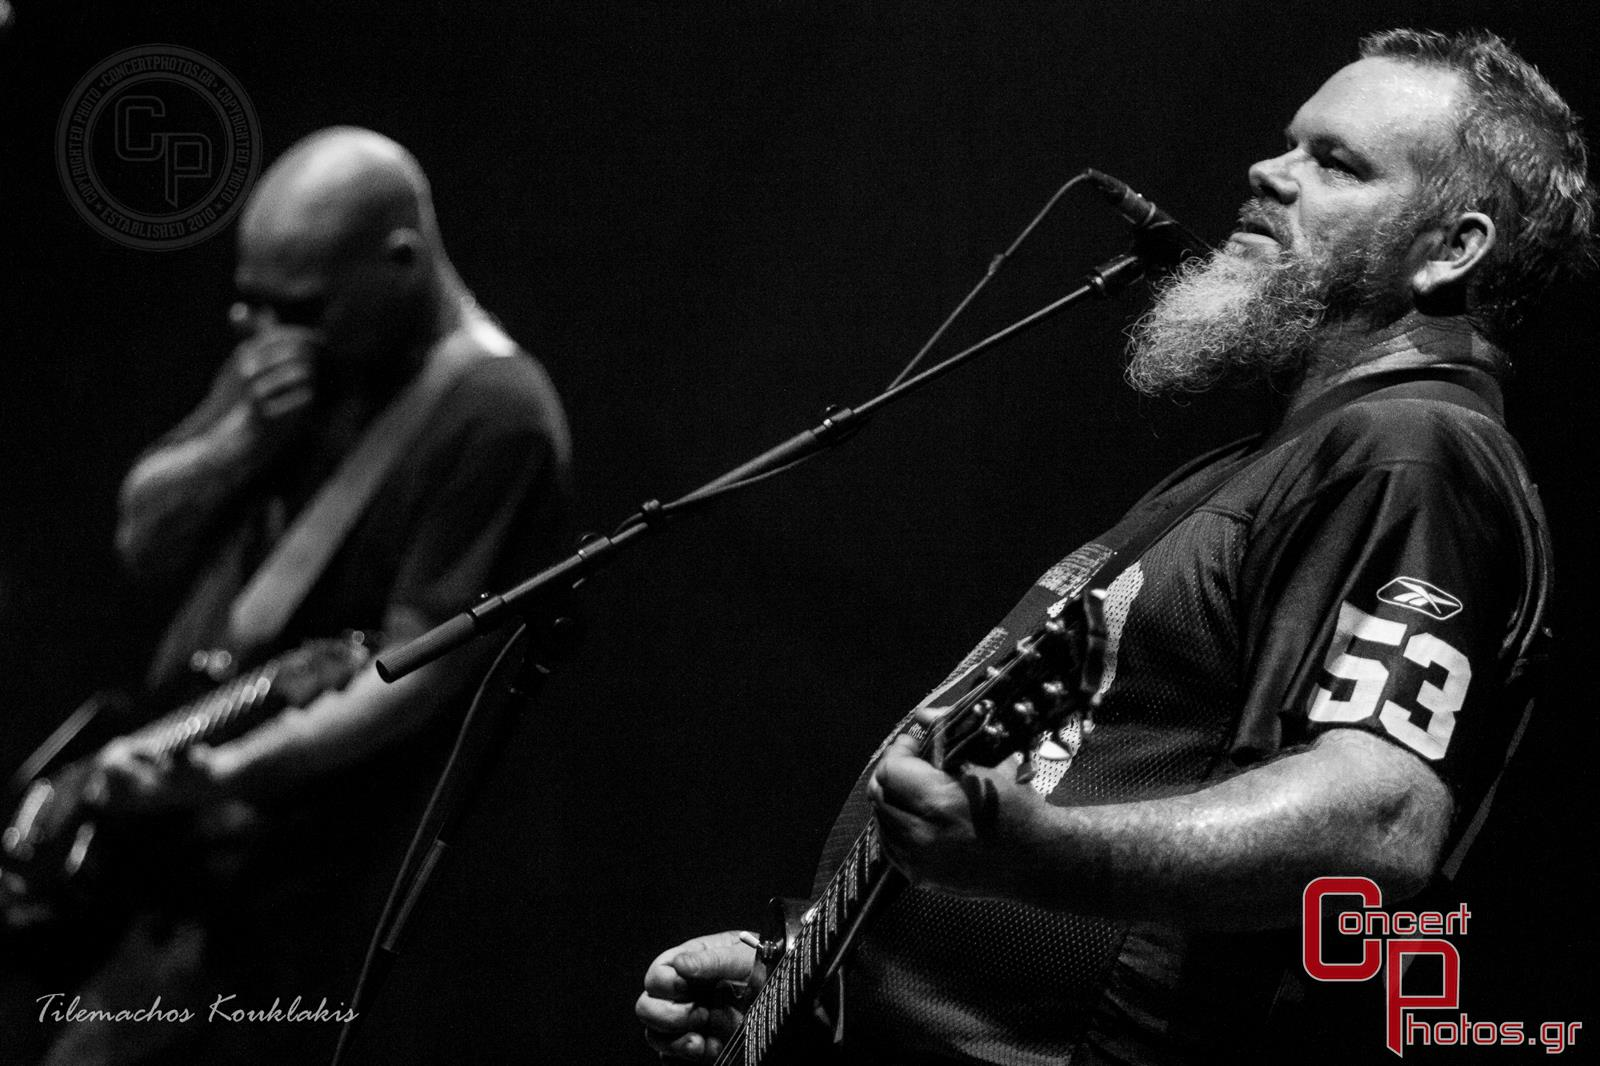 Neurosis-Neurosis photographer:  - concertphotos_20140707_23_56_35-7